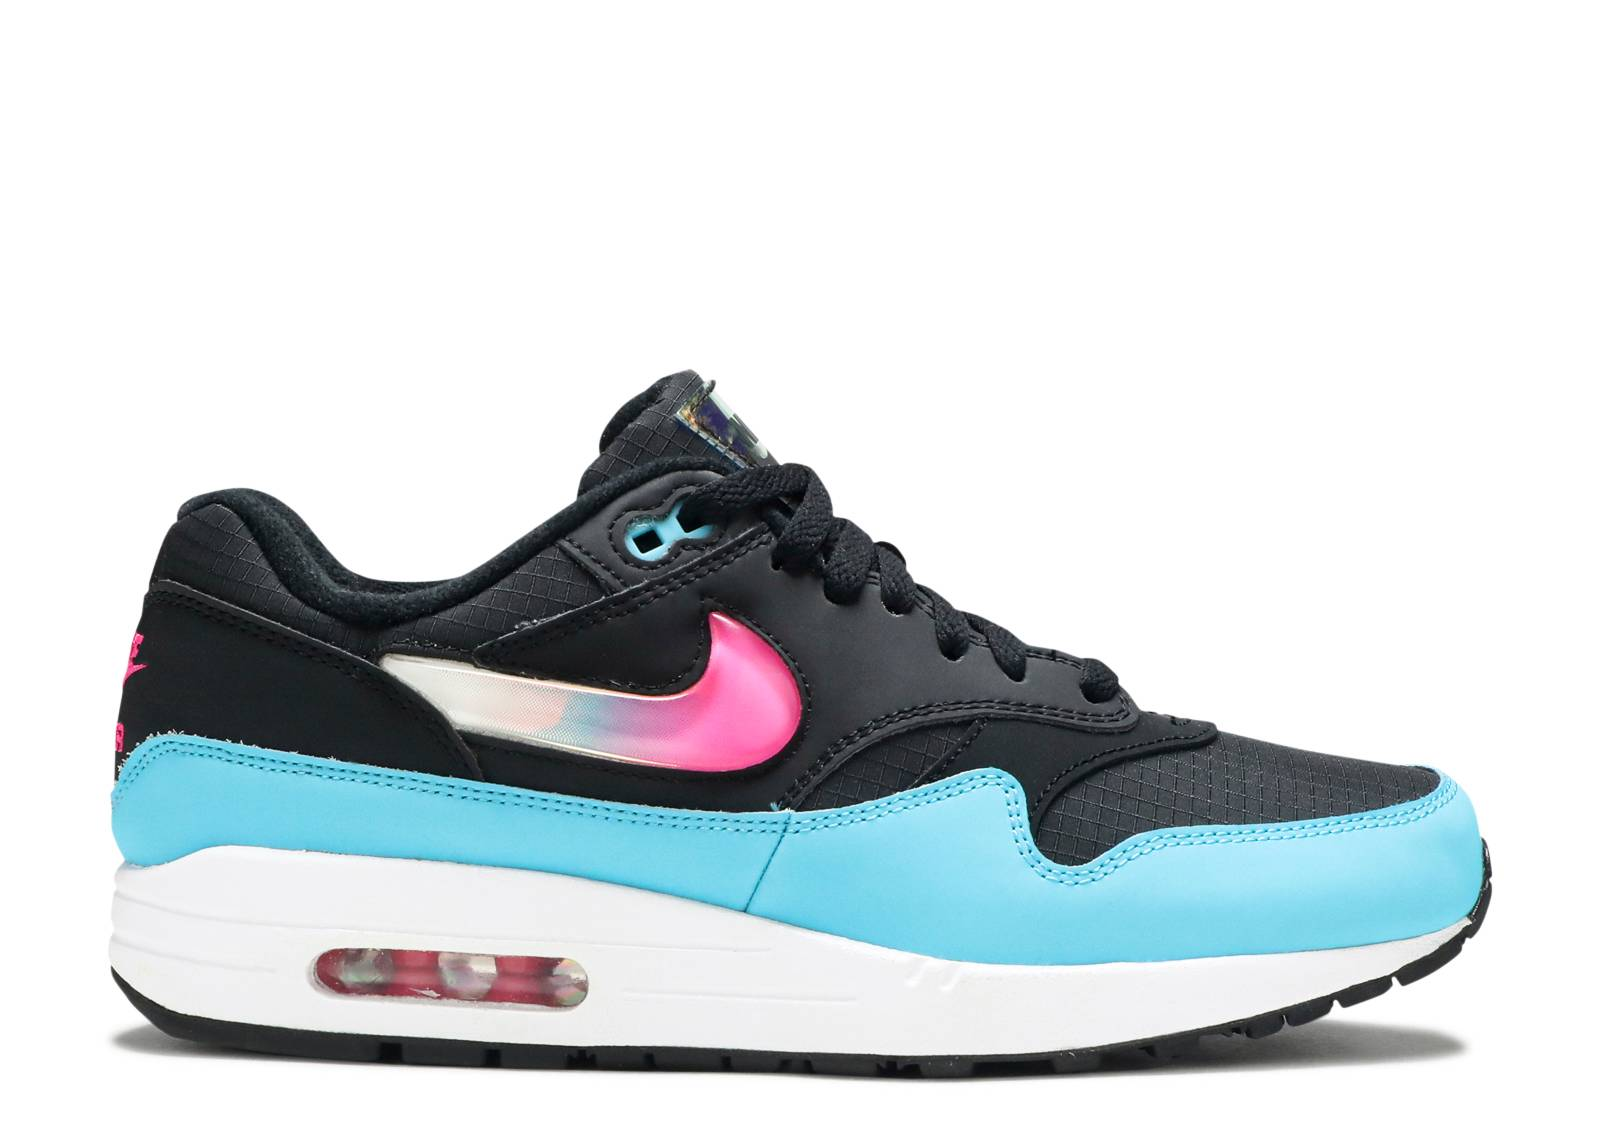 Nike Air Max 1 Men's & Women's Shoes | Flight Club